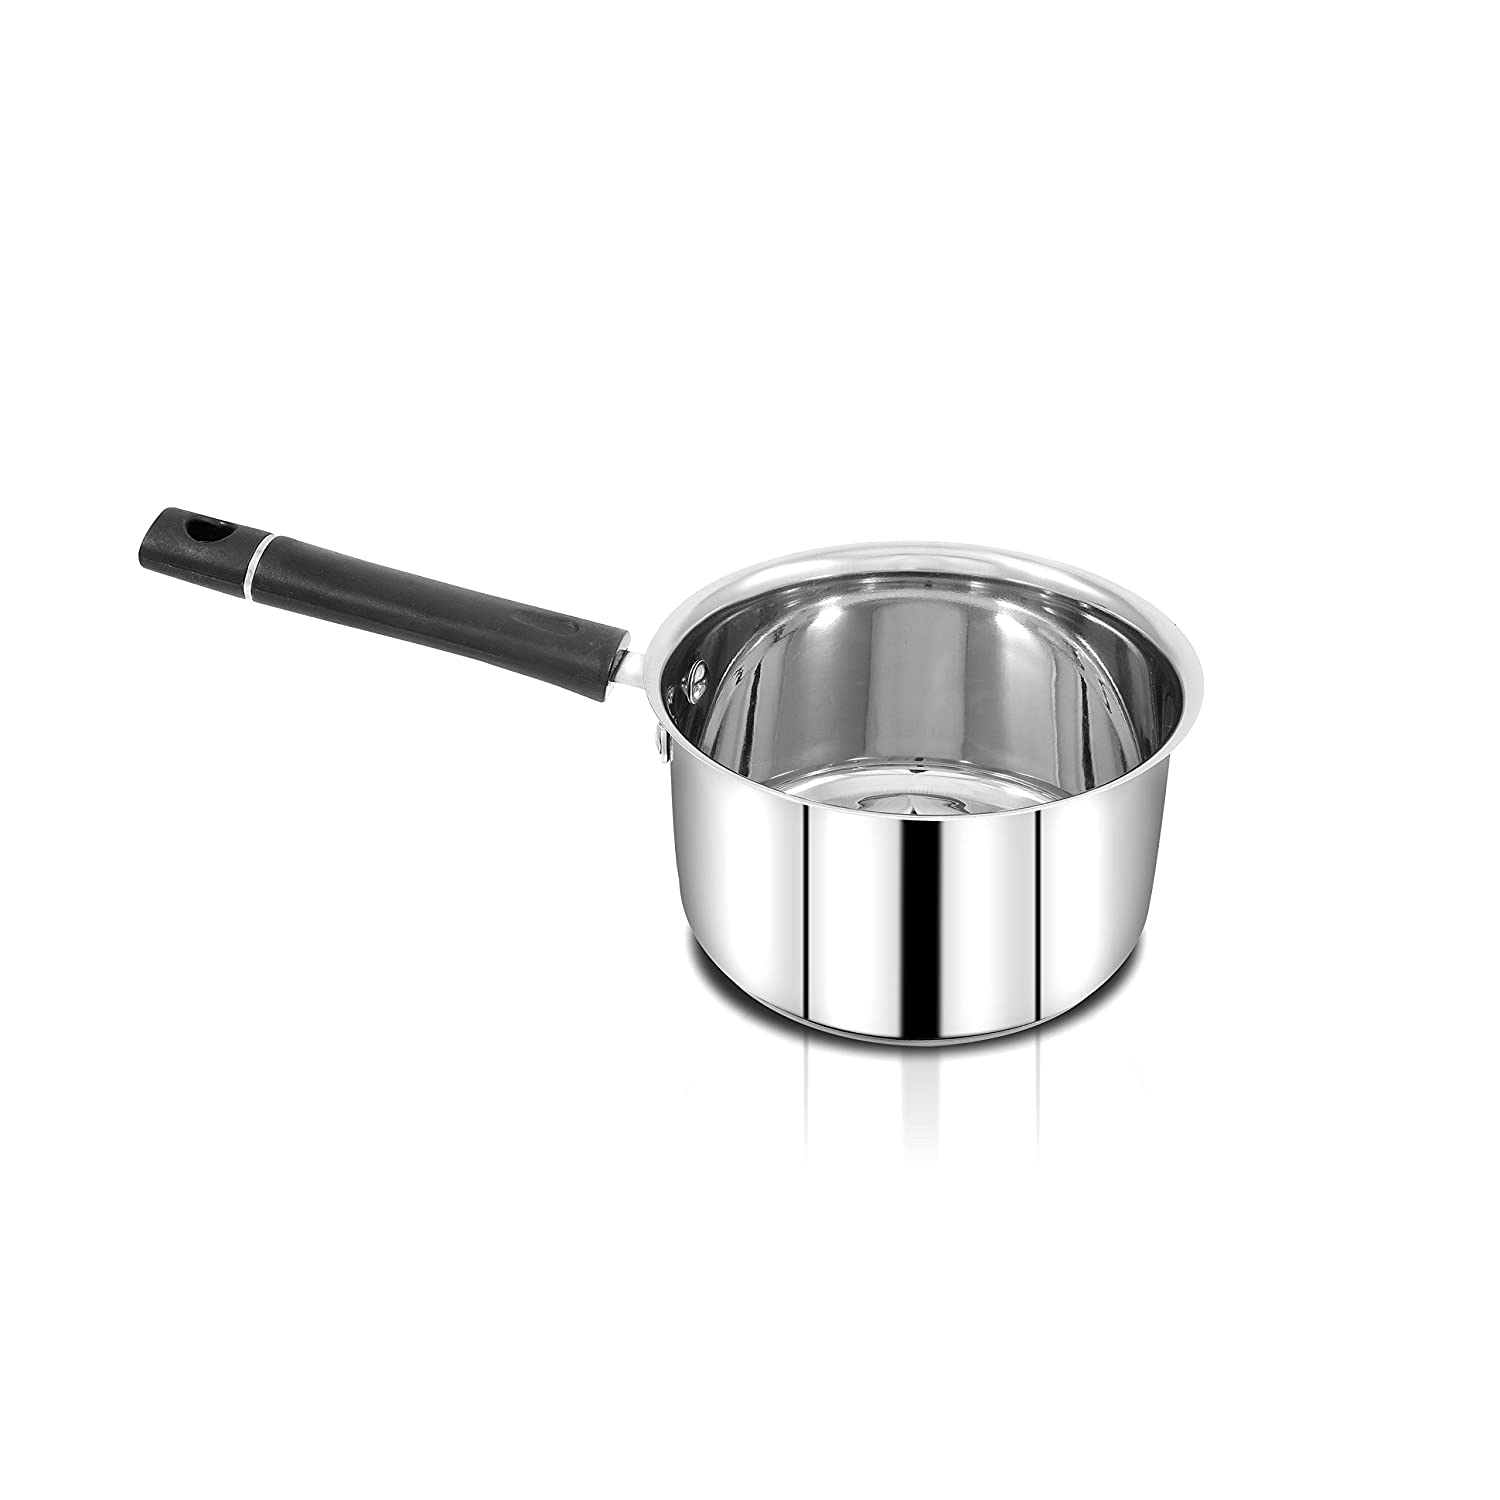 Pigeon Triply Stainless Steel Sauce Pan, 2 Litres/16cm, Silver Saucepans